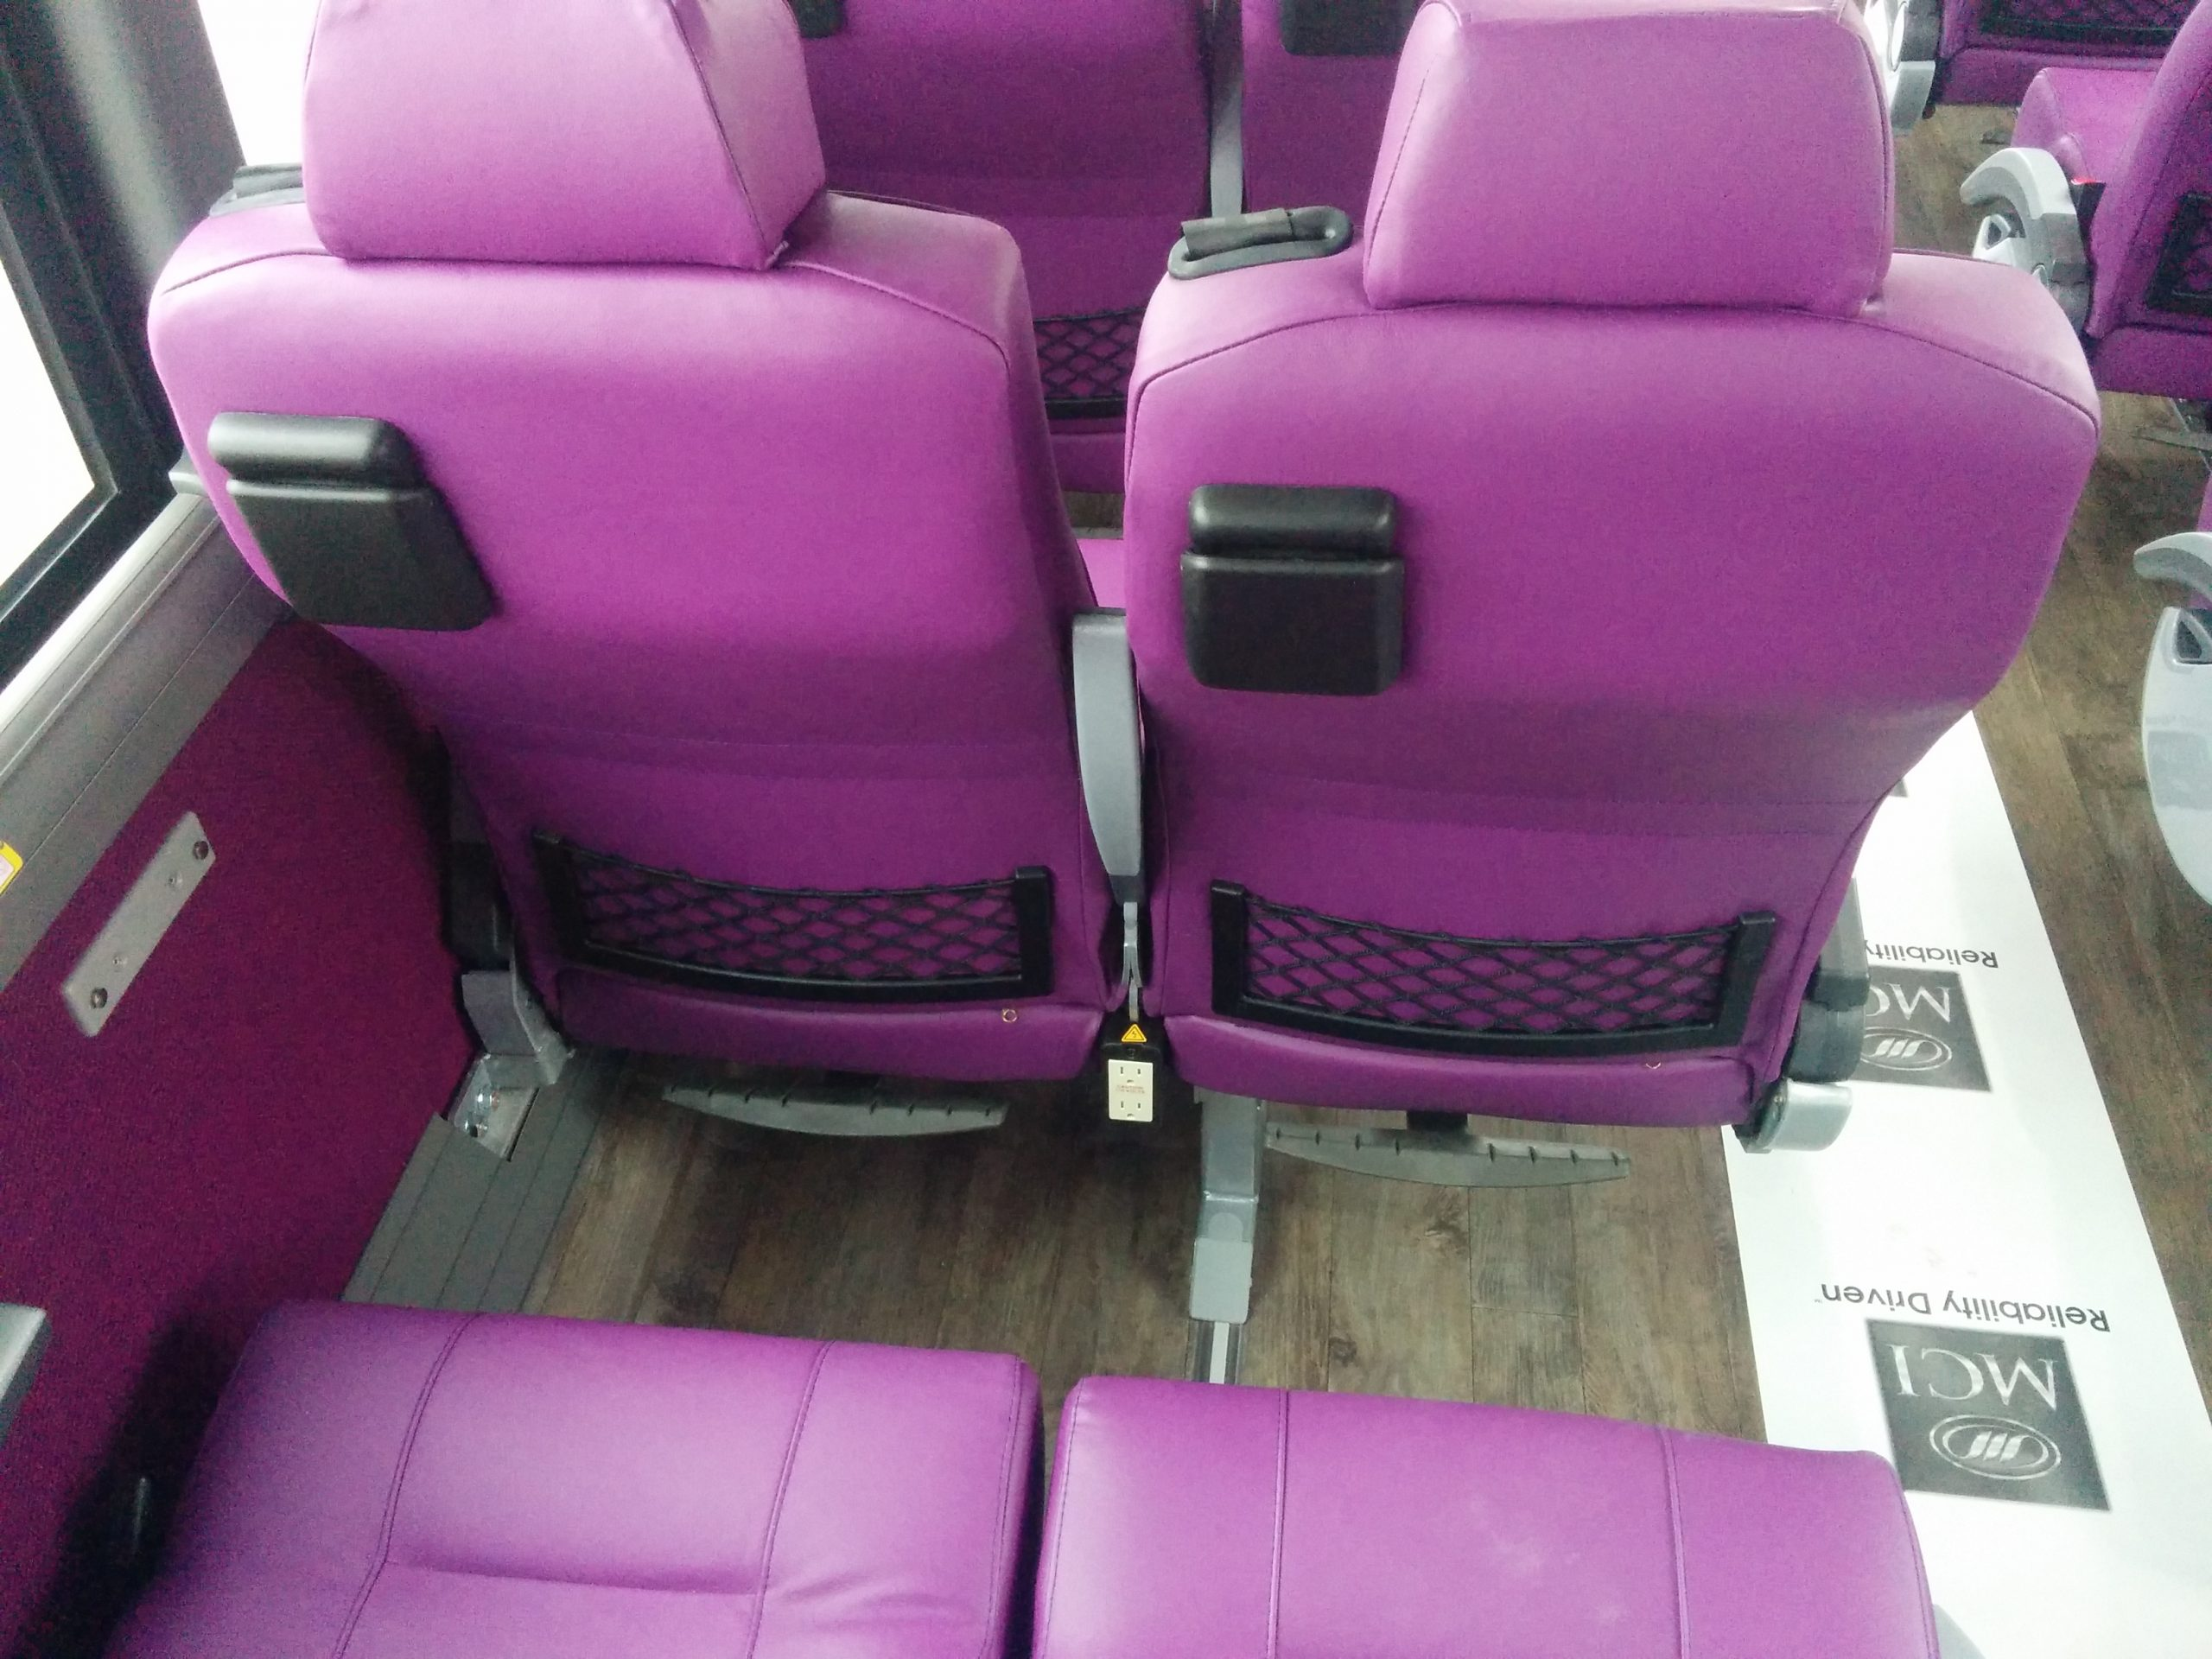 features/amenities at each seat 54 passenger coach